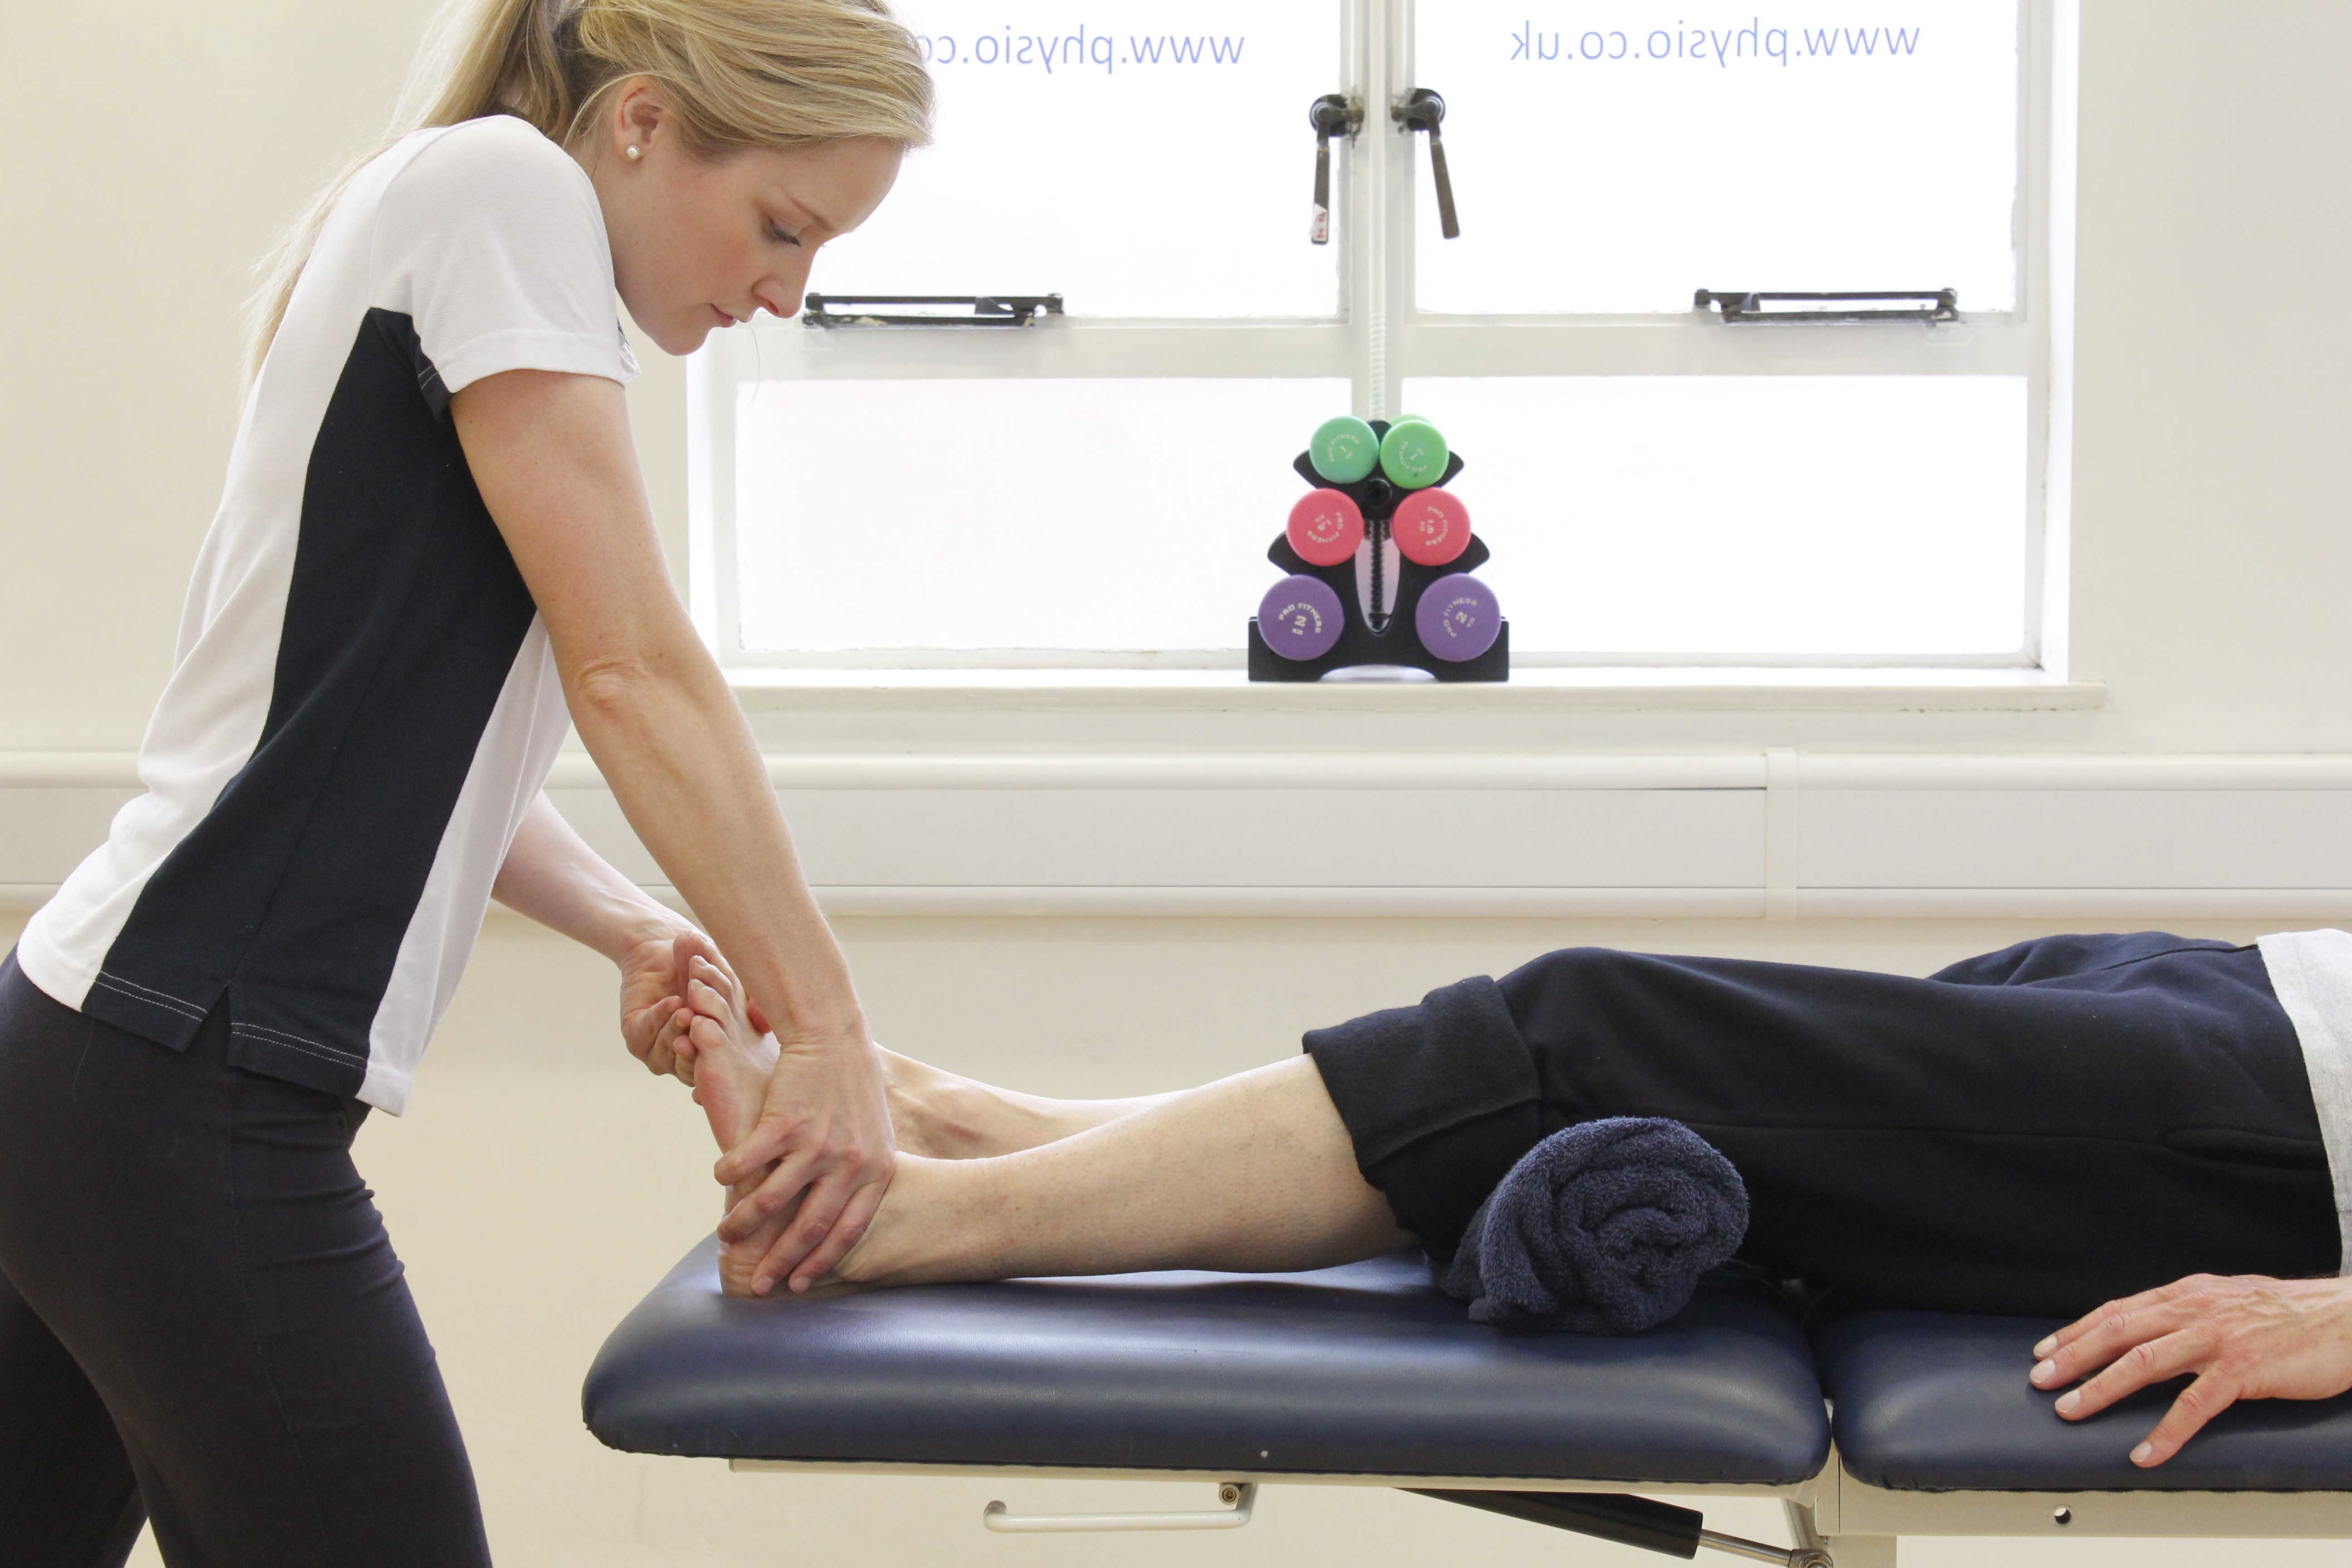 Effluage massage applied to the ankle joint to disperse swelling in the soft tissues